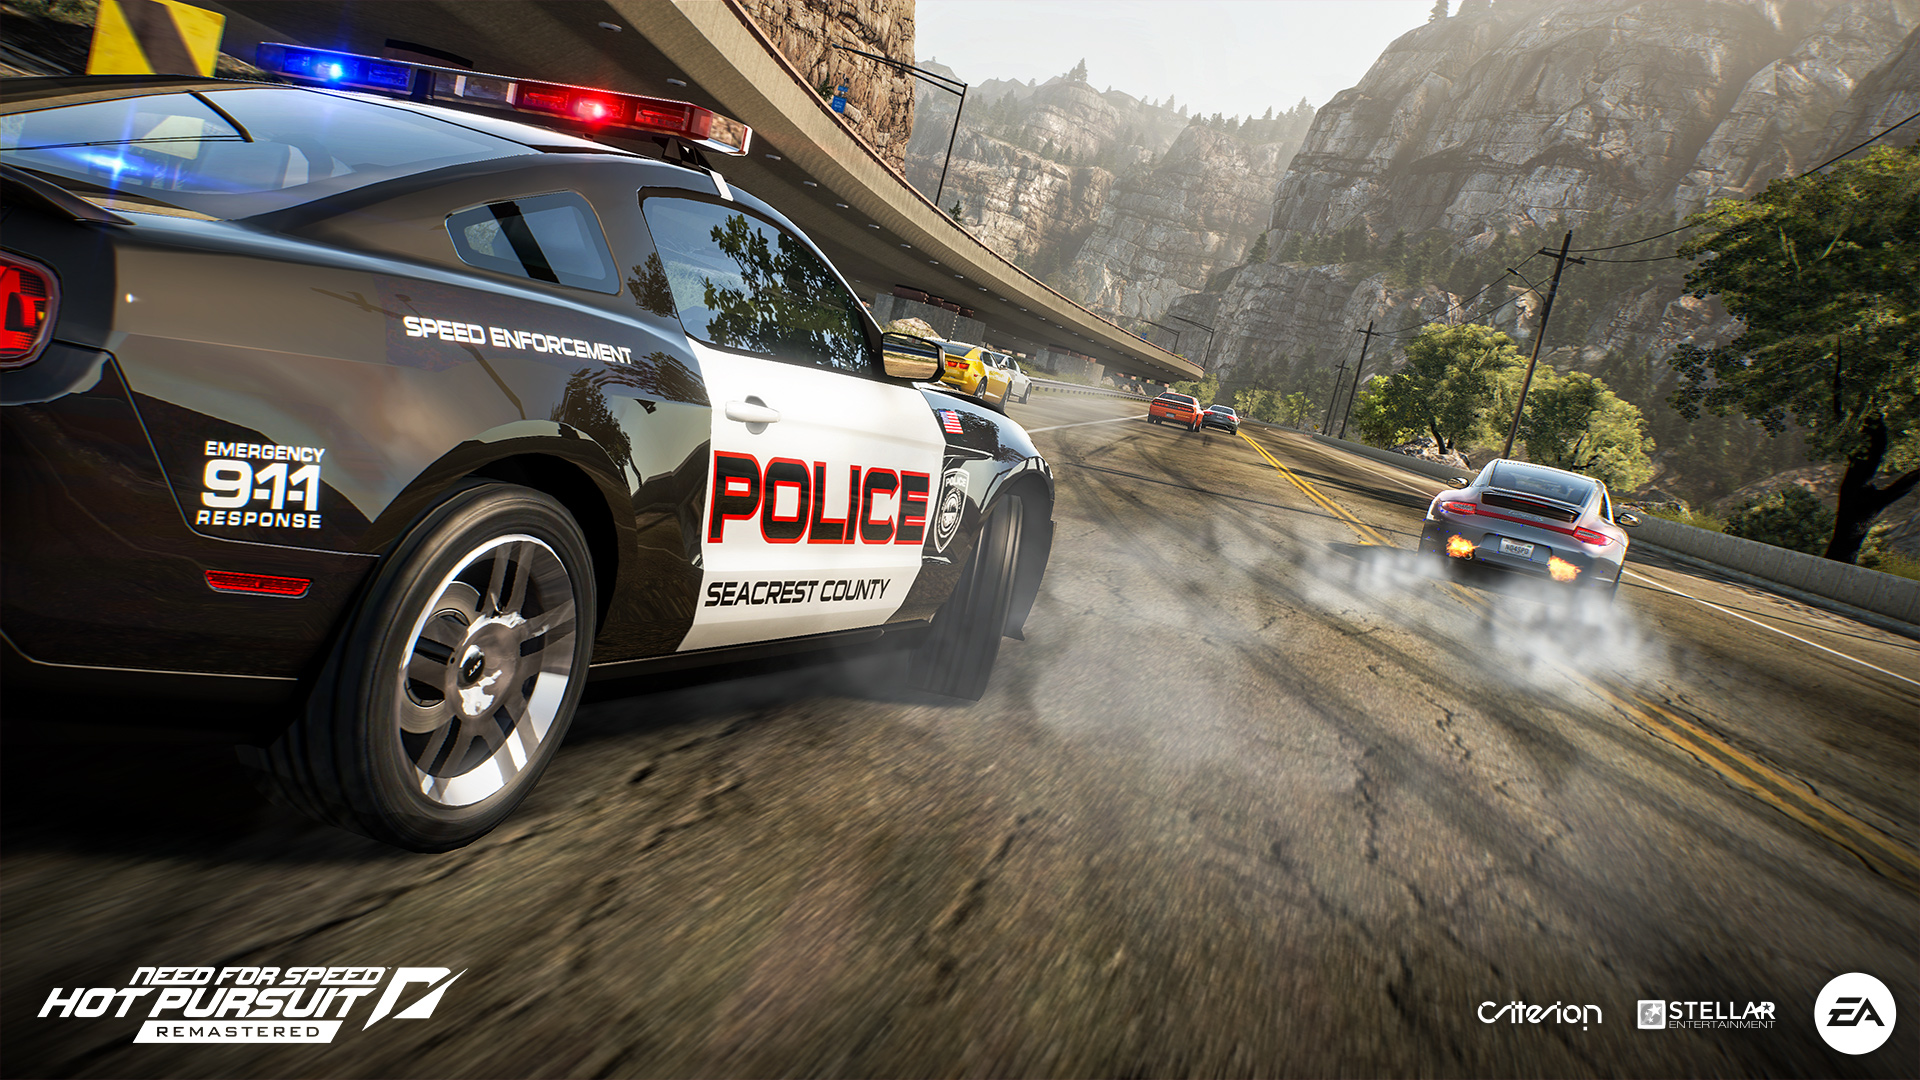 Need for Speed: Hot Pursuit Remastered Revealed, Arrives November 6